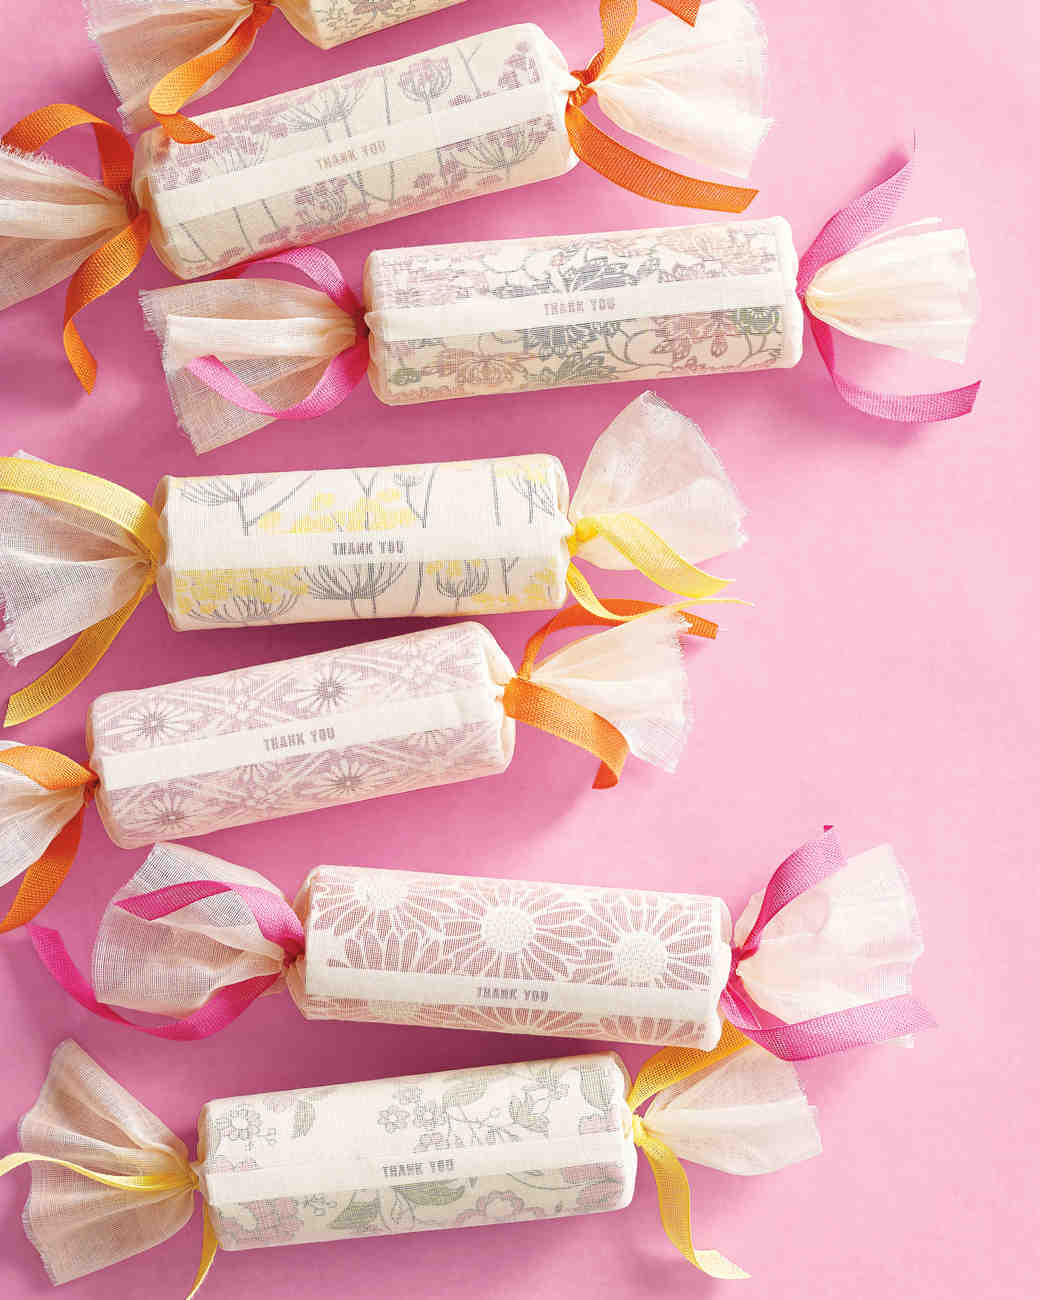 38 Wedding Favor Gift Wrapping Ideas To Steal